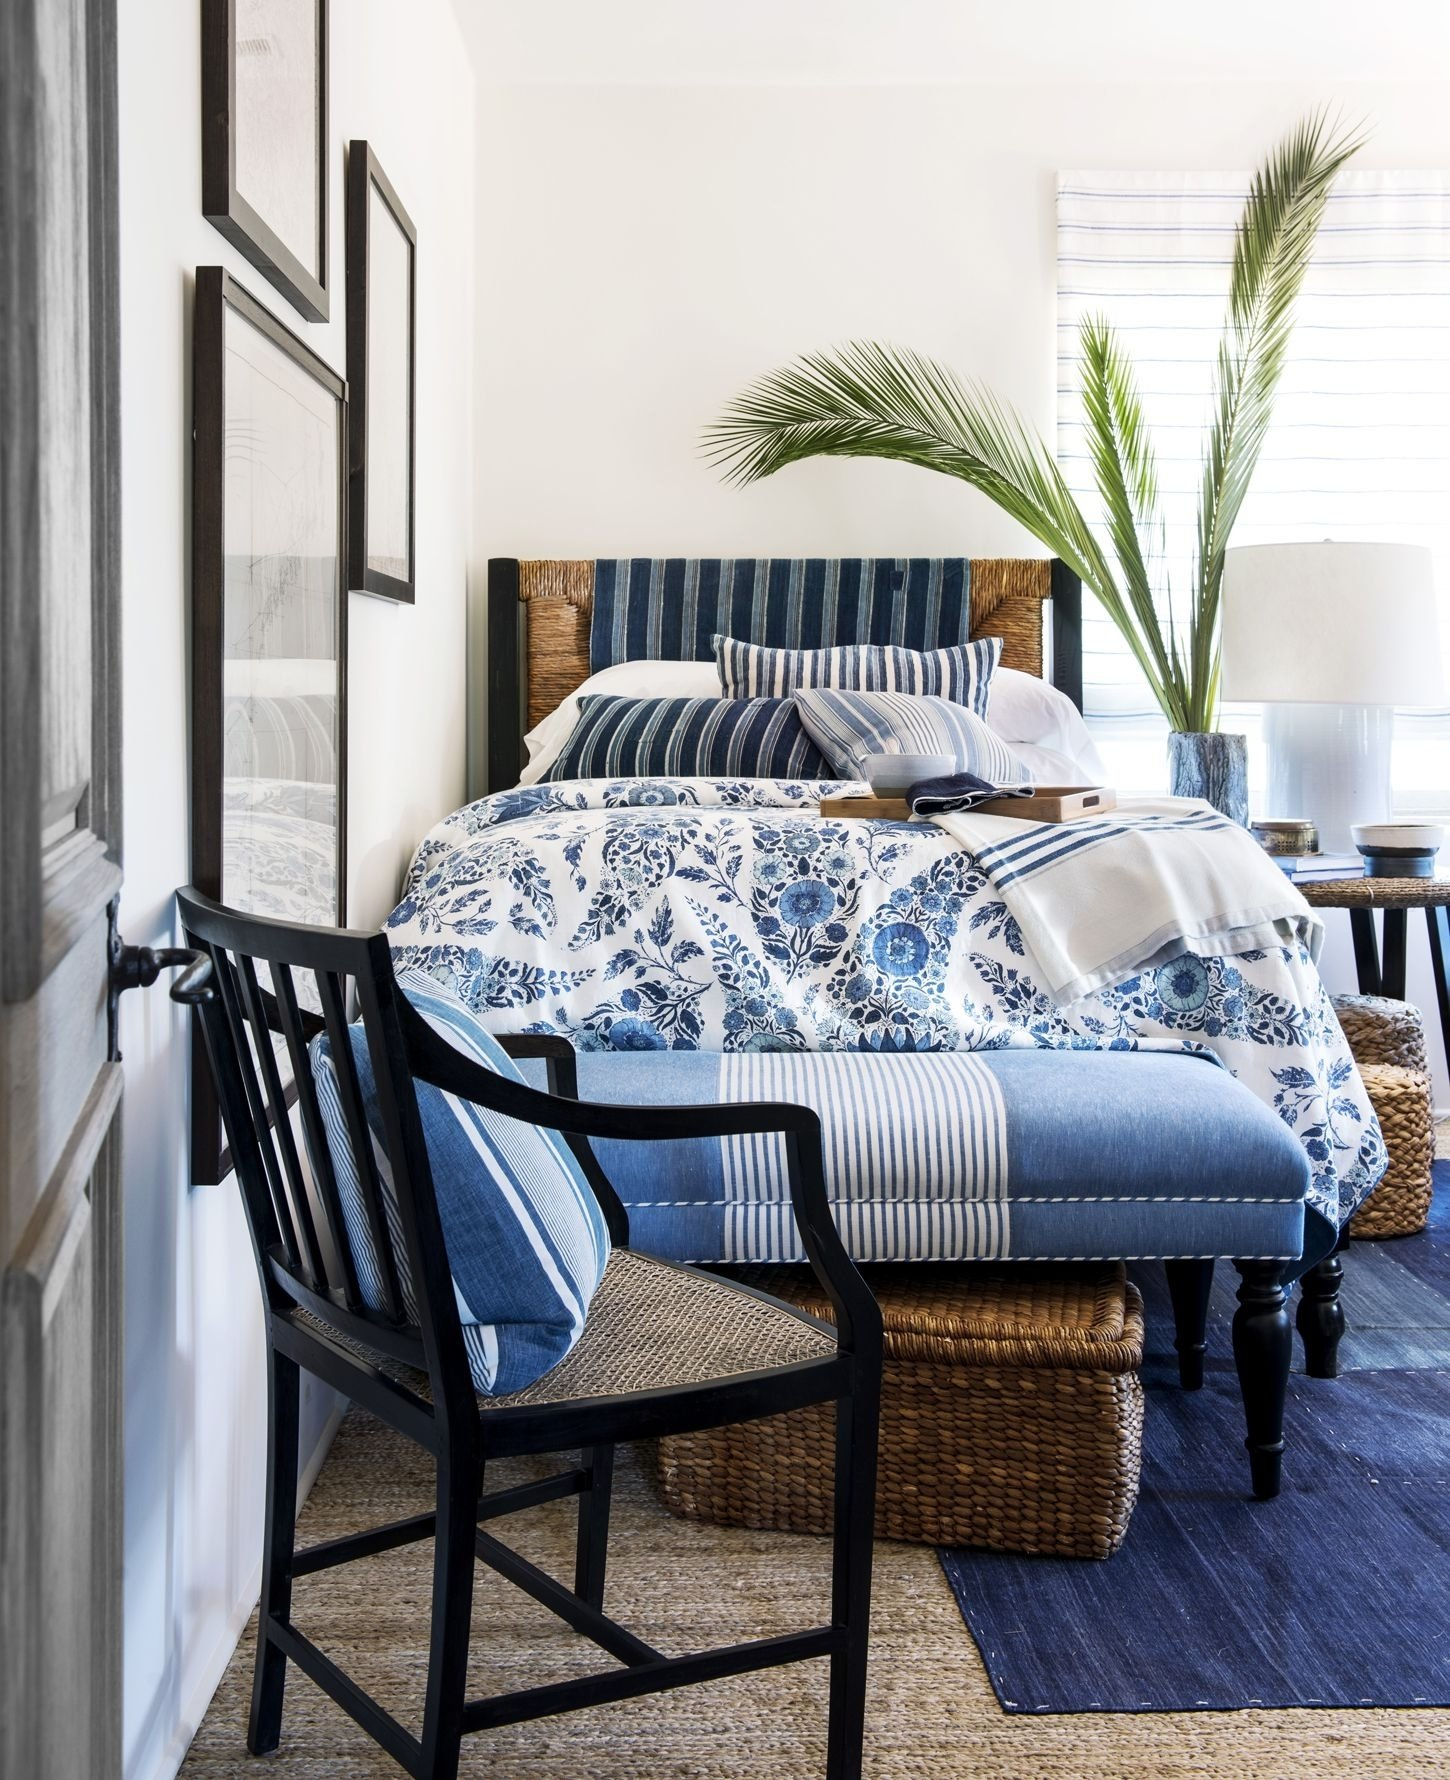 blue and white bedroom designs | mediajoongdok